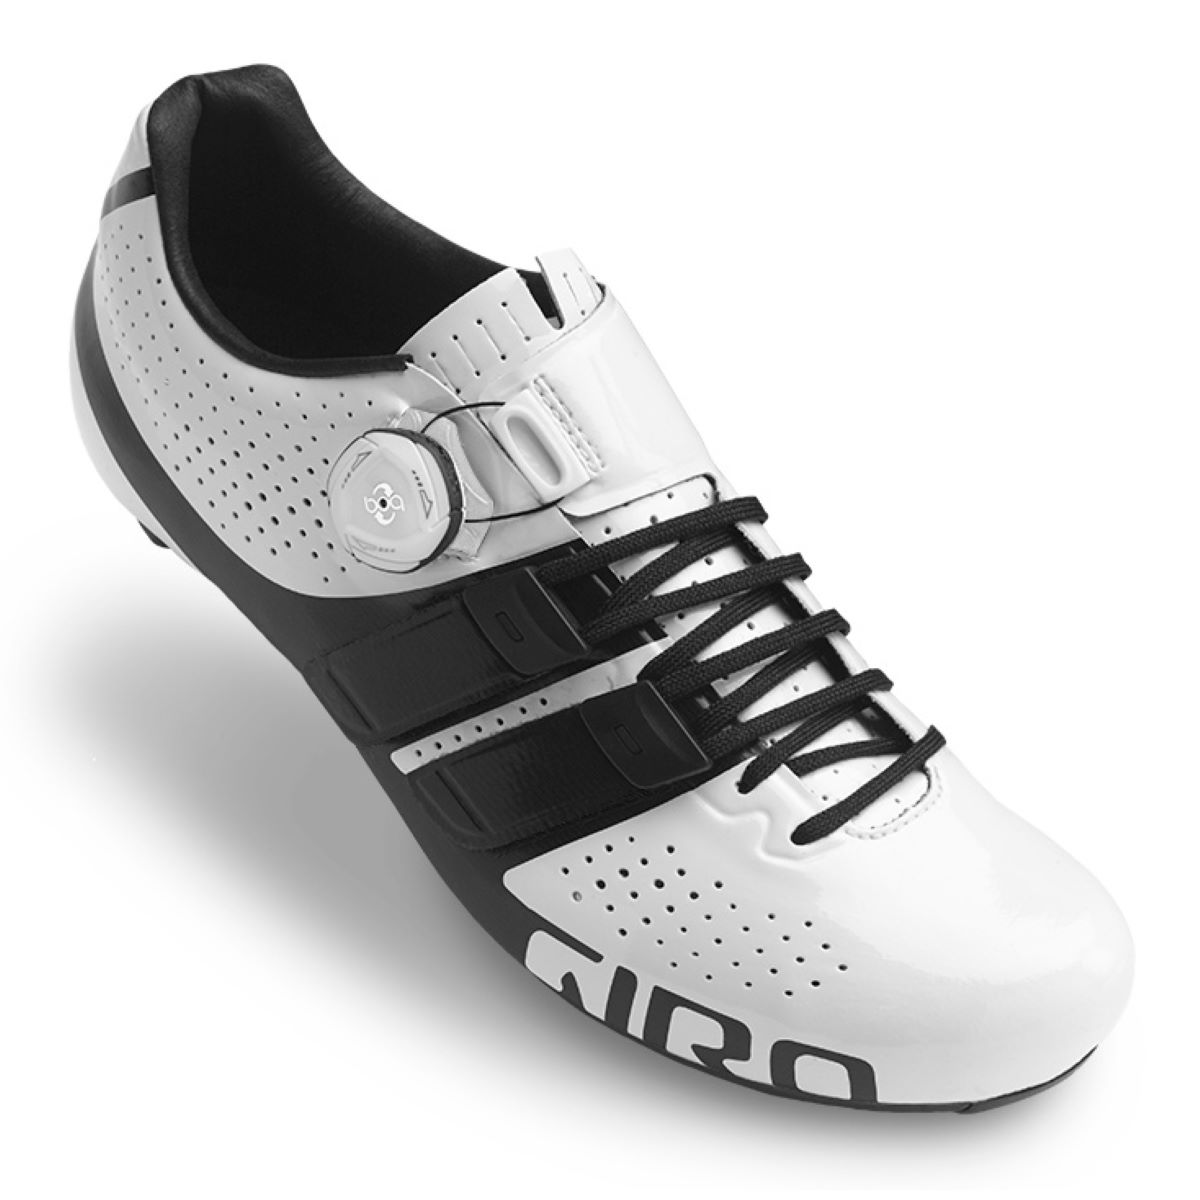 Giro factor techlace road shoes road shoes white black 2018 gisfte840 2